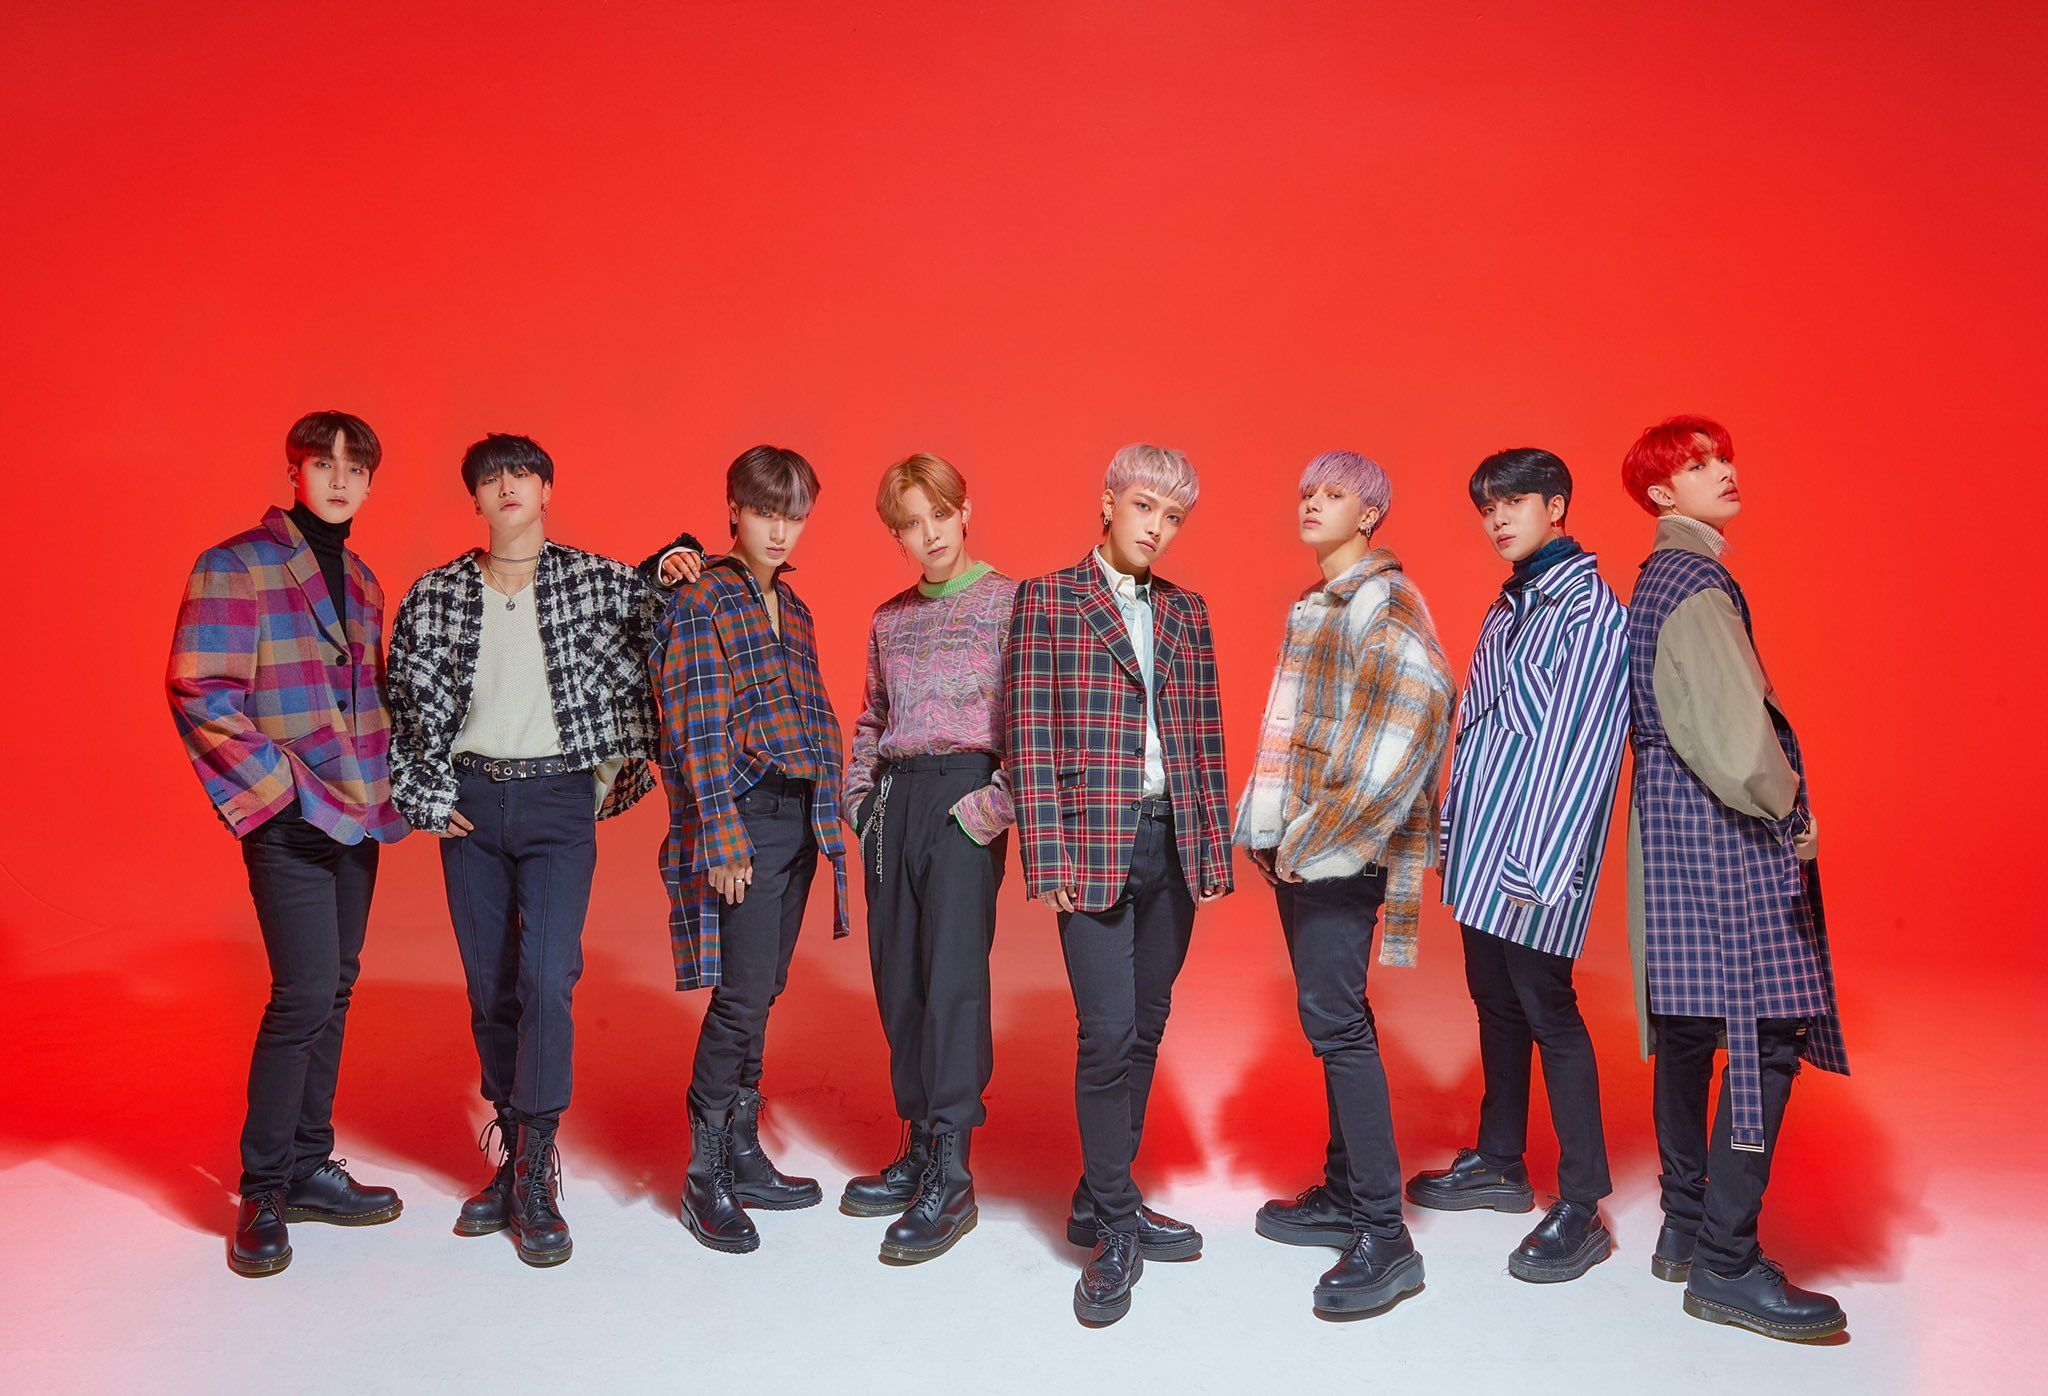 ATEEZ JP on in 2020 Mini albums, Woo young, Japan